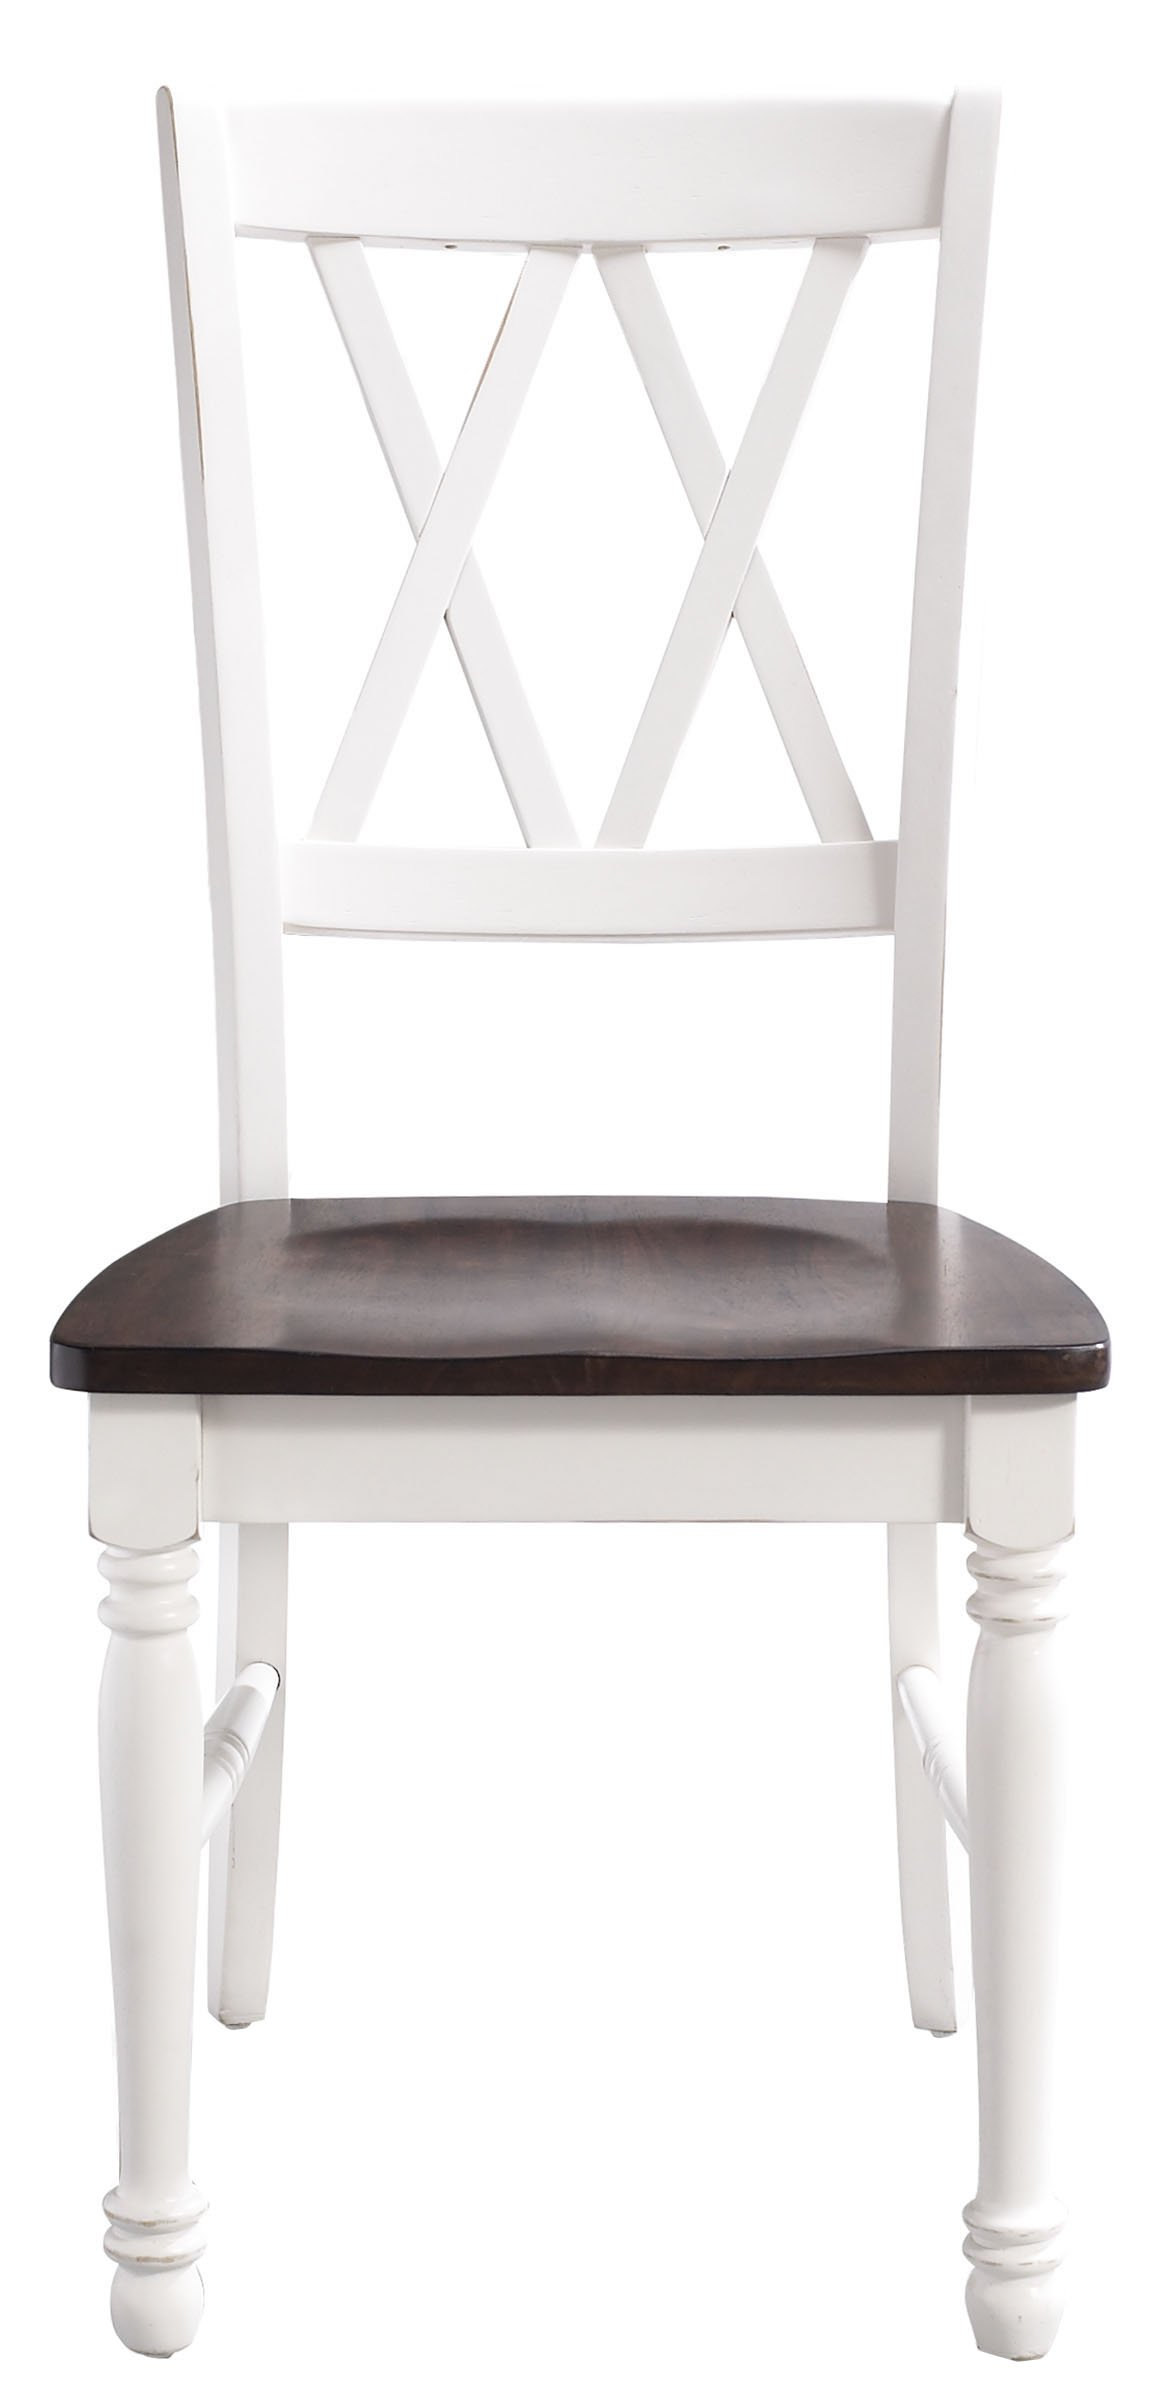 Crosley Furniture CF501018-WH Shelby Dining Chairs (Set of 2), White by Crosley Furniture (Image #3)